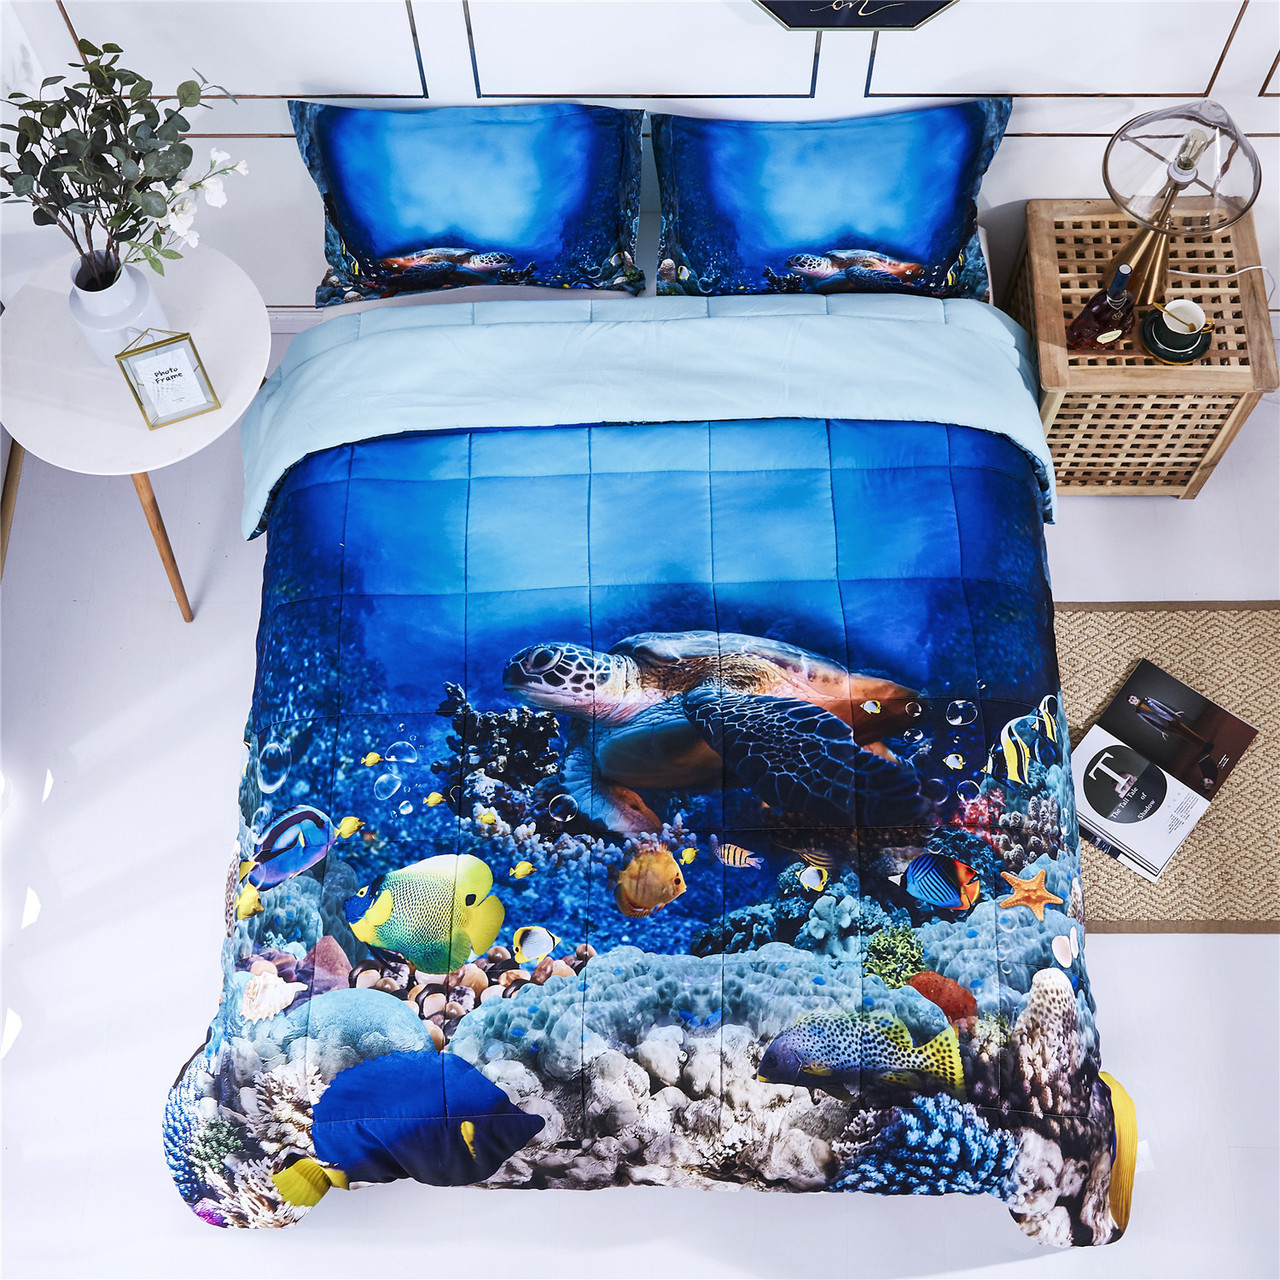 3d bedding set queen king size reactive animals and floral print comforter set box stitched quilted duvet general for men and women especially for